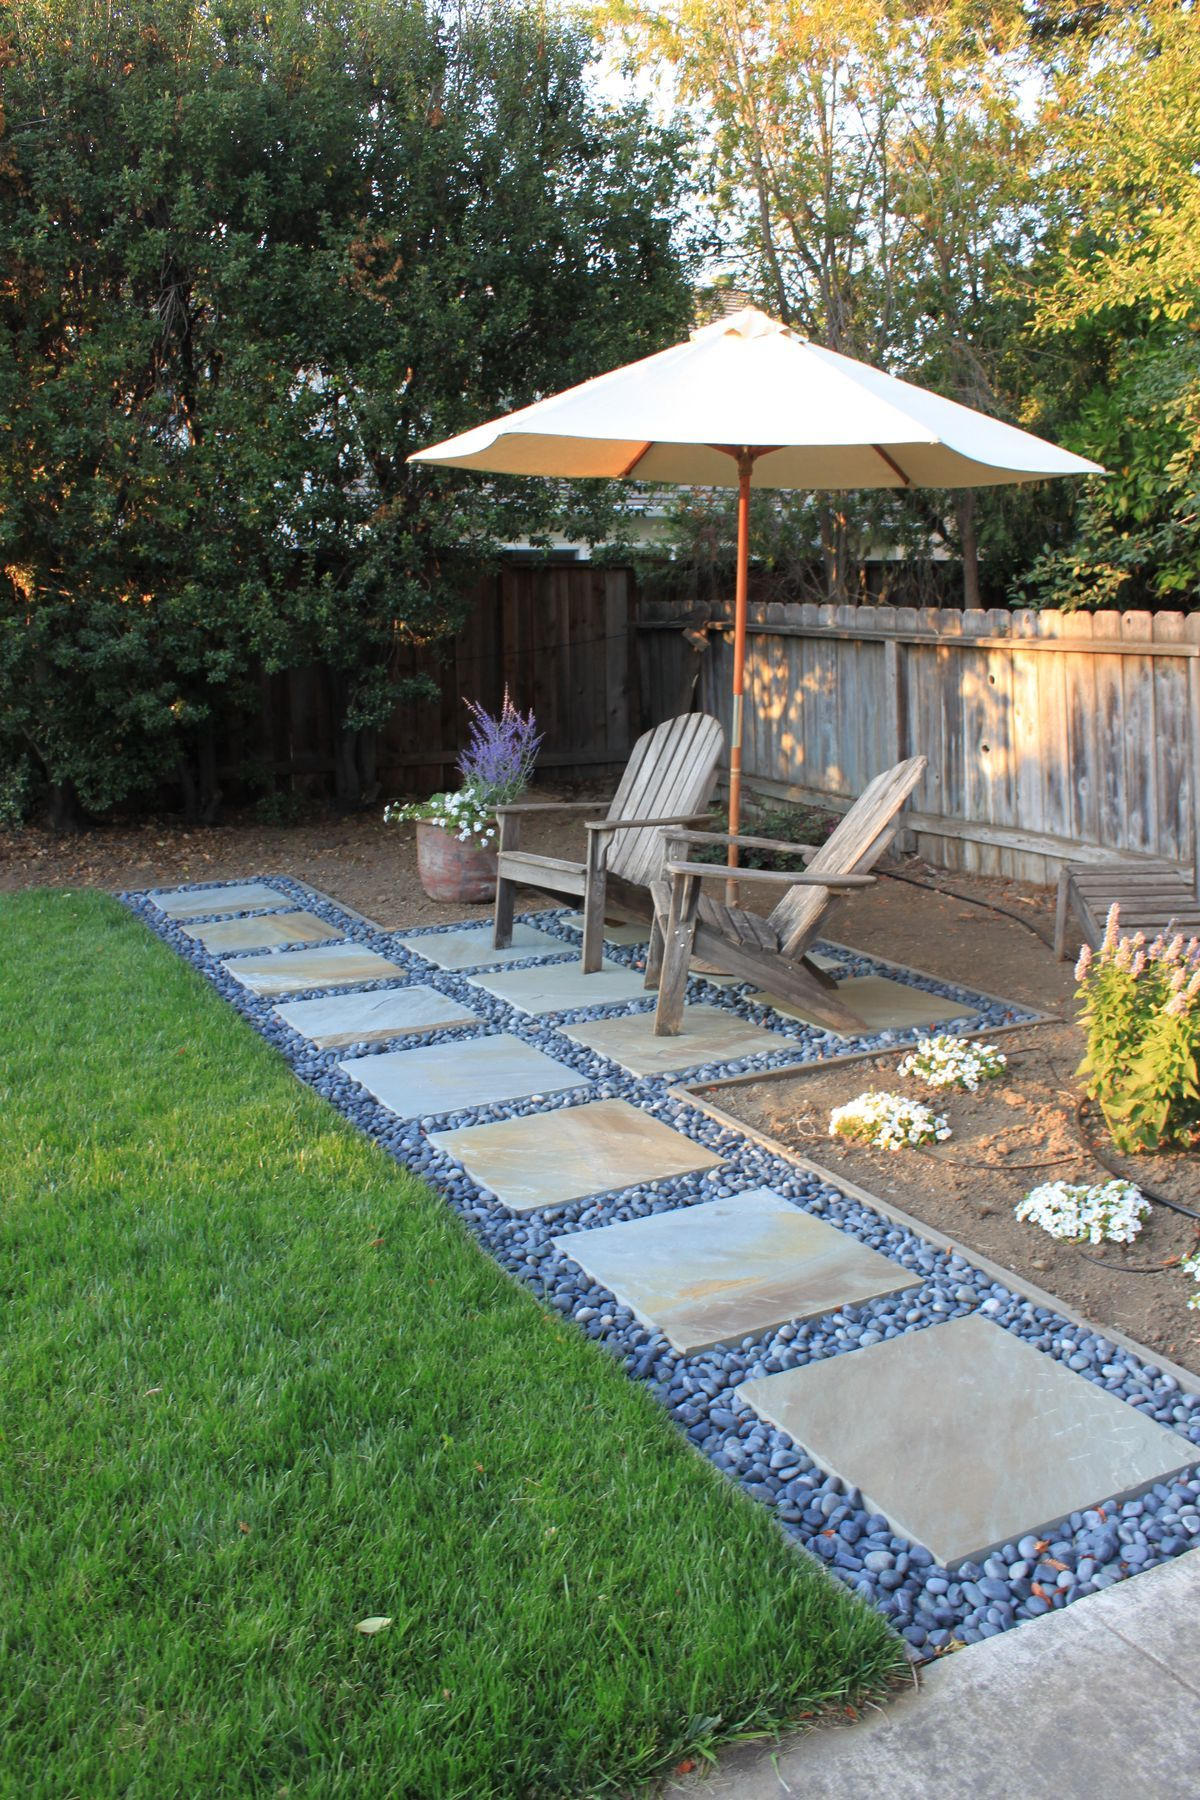 Pin by Peggy Peters on landscaping   Small backyard ... on Small Backyard Pavers Ideas id=57648